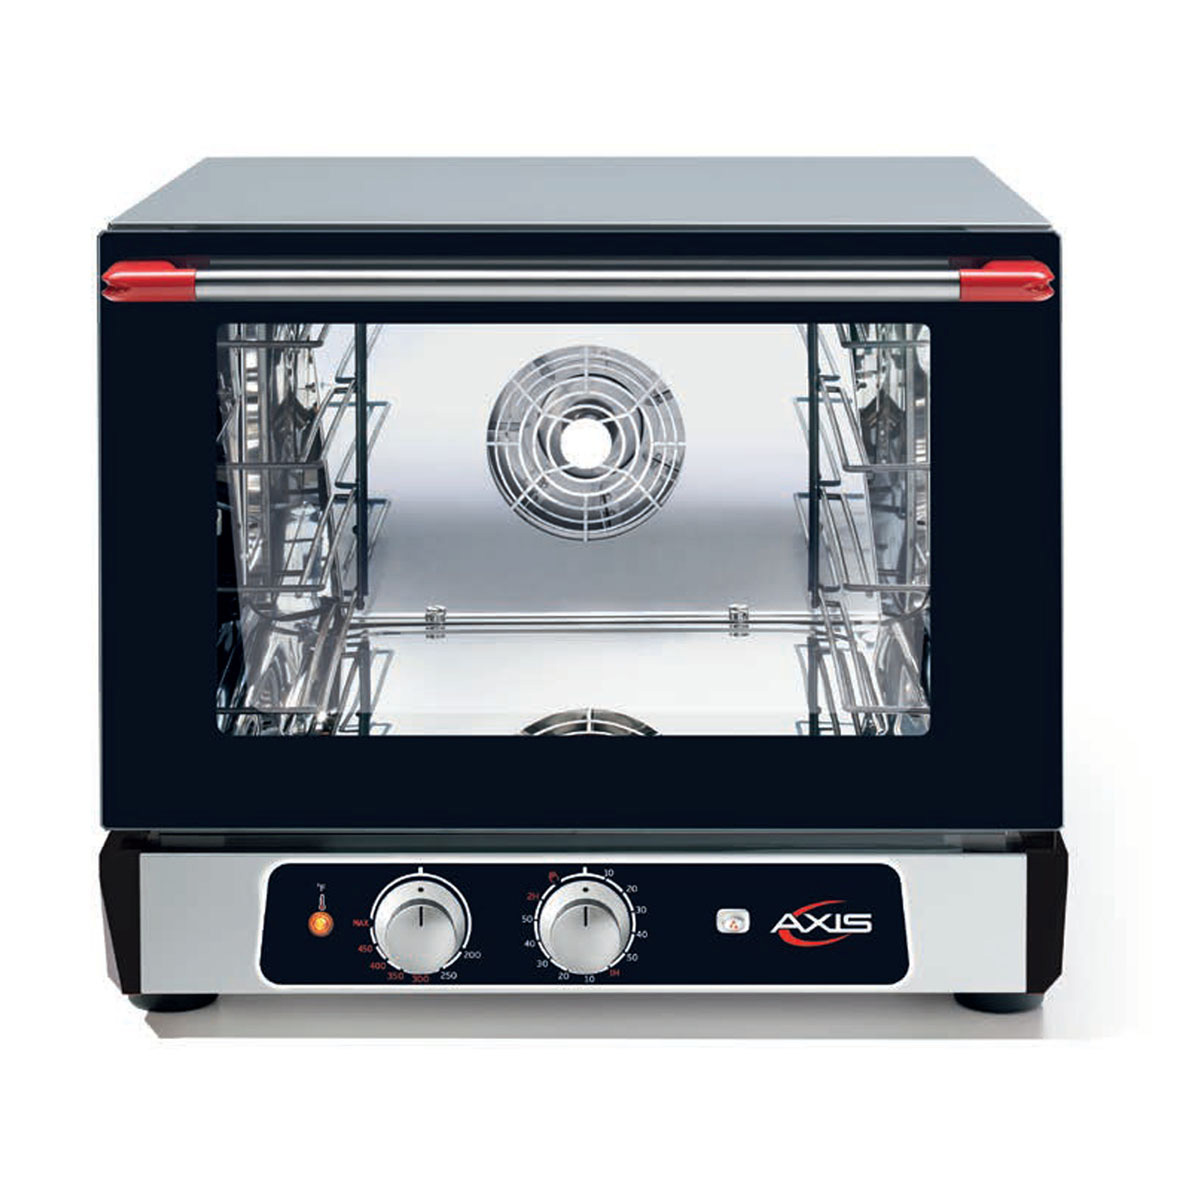 Axis AX-513RH Half-Size Countertop Electric Convection Oven with Humidity,  Manual Control